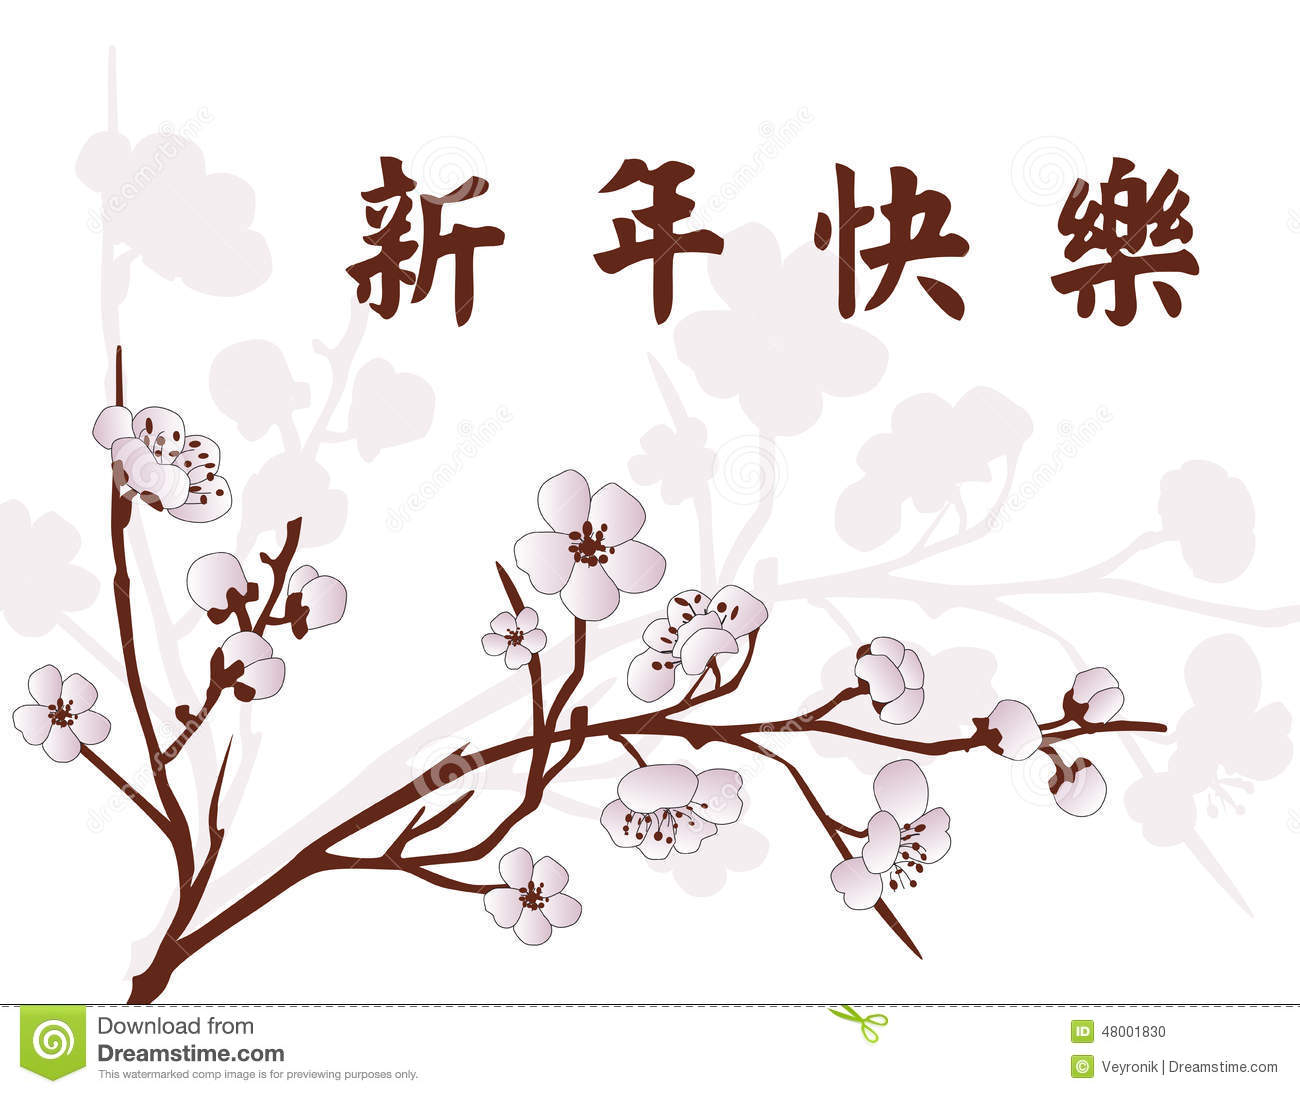 Japanese Sakura New Year Card Stock Vector - Image: 48001830